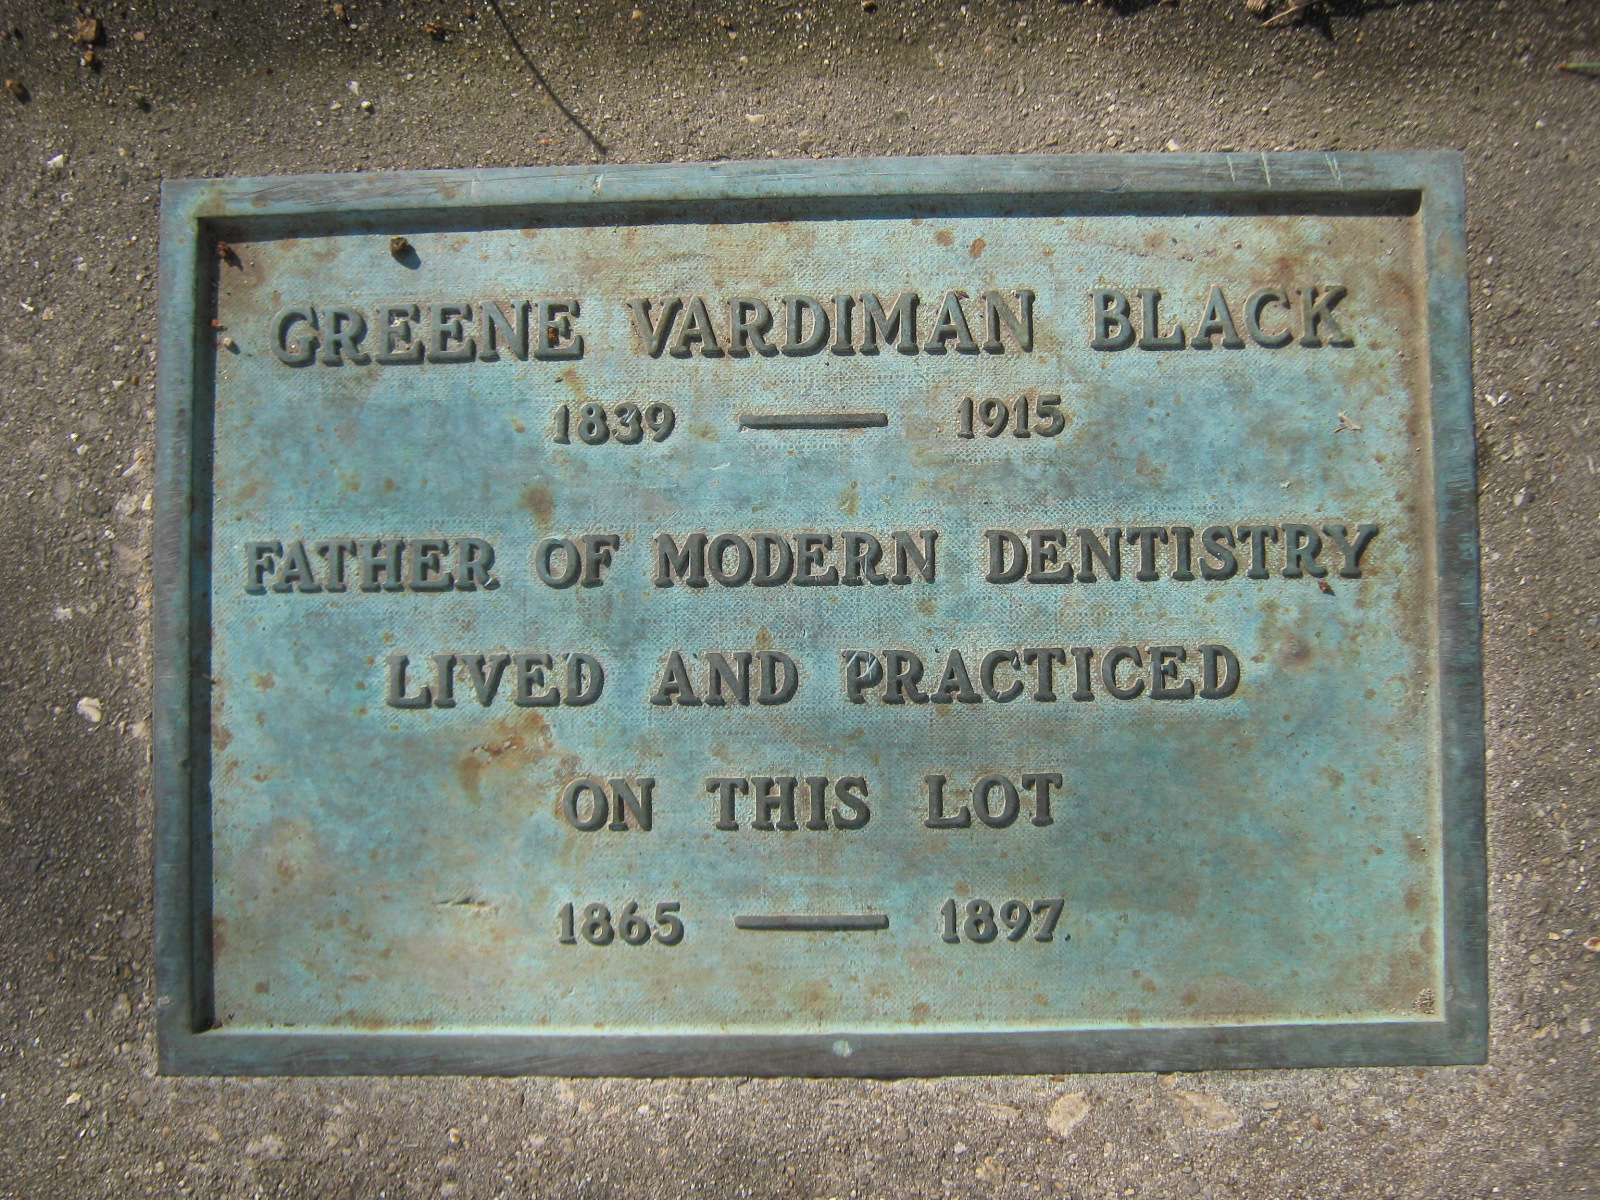 This plaque is located in the sidewalk, next to the state historical marker on East State St.